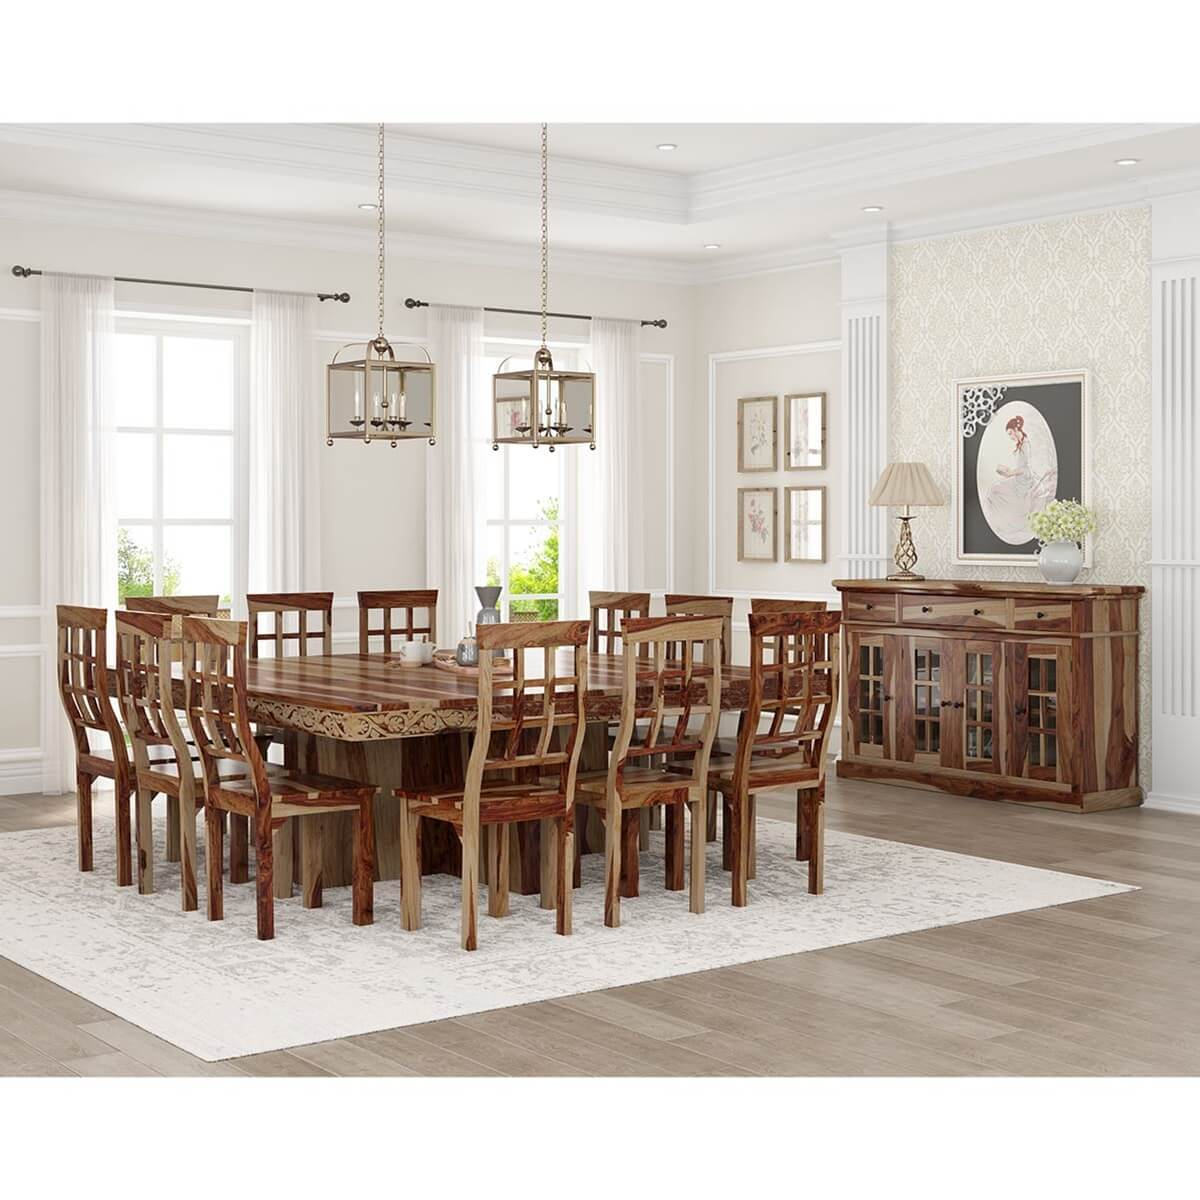 Dallas Ranch Square Pedestal Solid Wood 15 Piece Dining